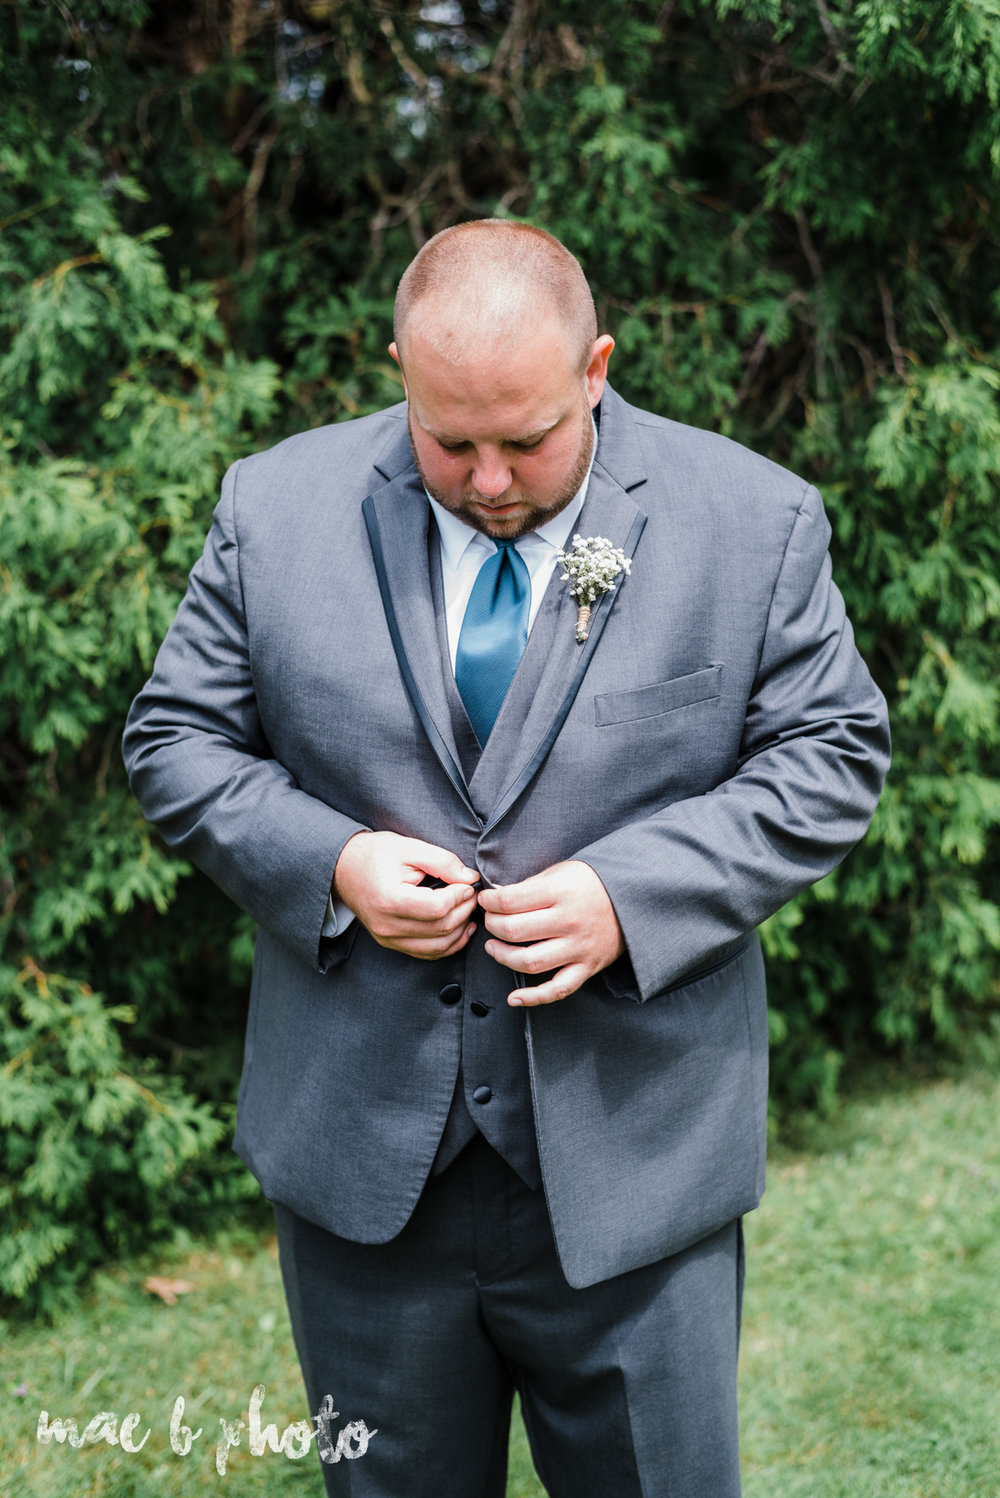 jenna and jay's personal fourth of july weekend wedding at mill creek park in youngstown ohio photographed by cleveland wedding photographer mae b photo-37.jpg